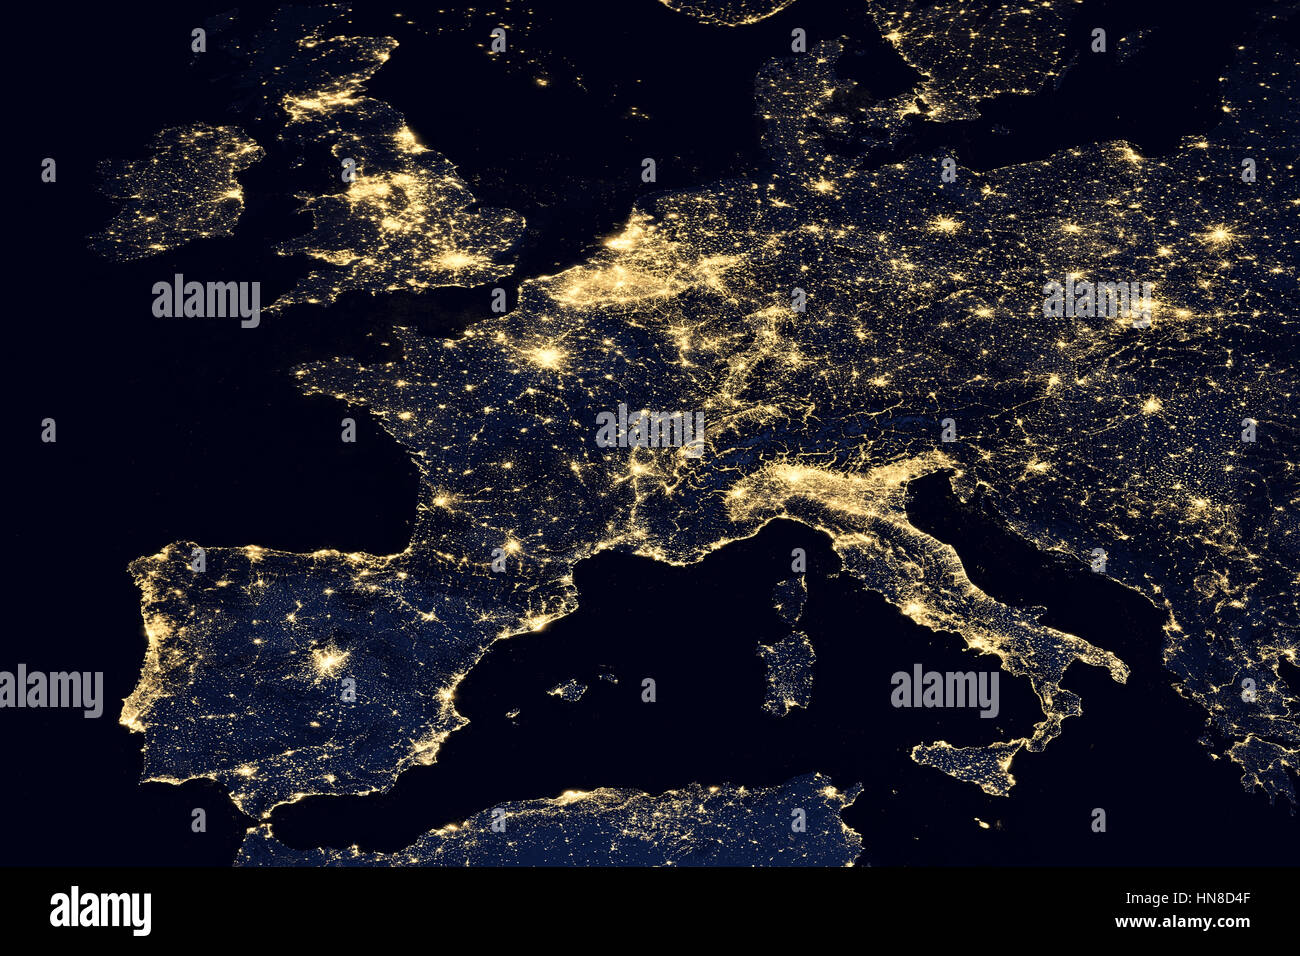 City lights on world map Europe Stock Photo Royalty Free Image